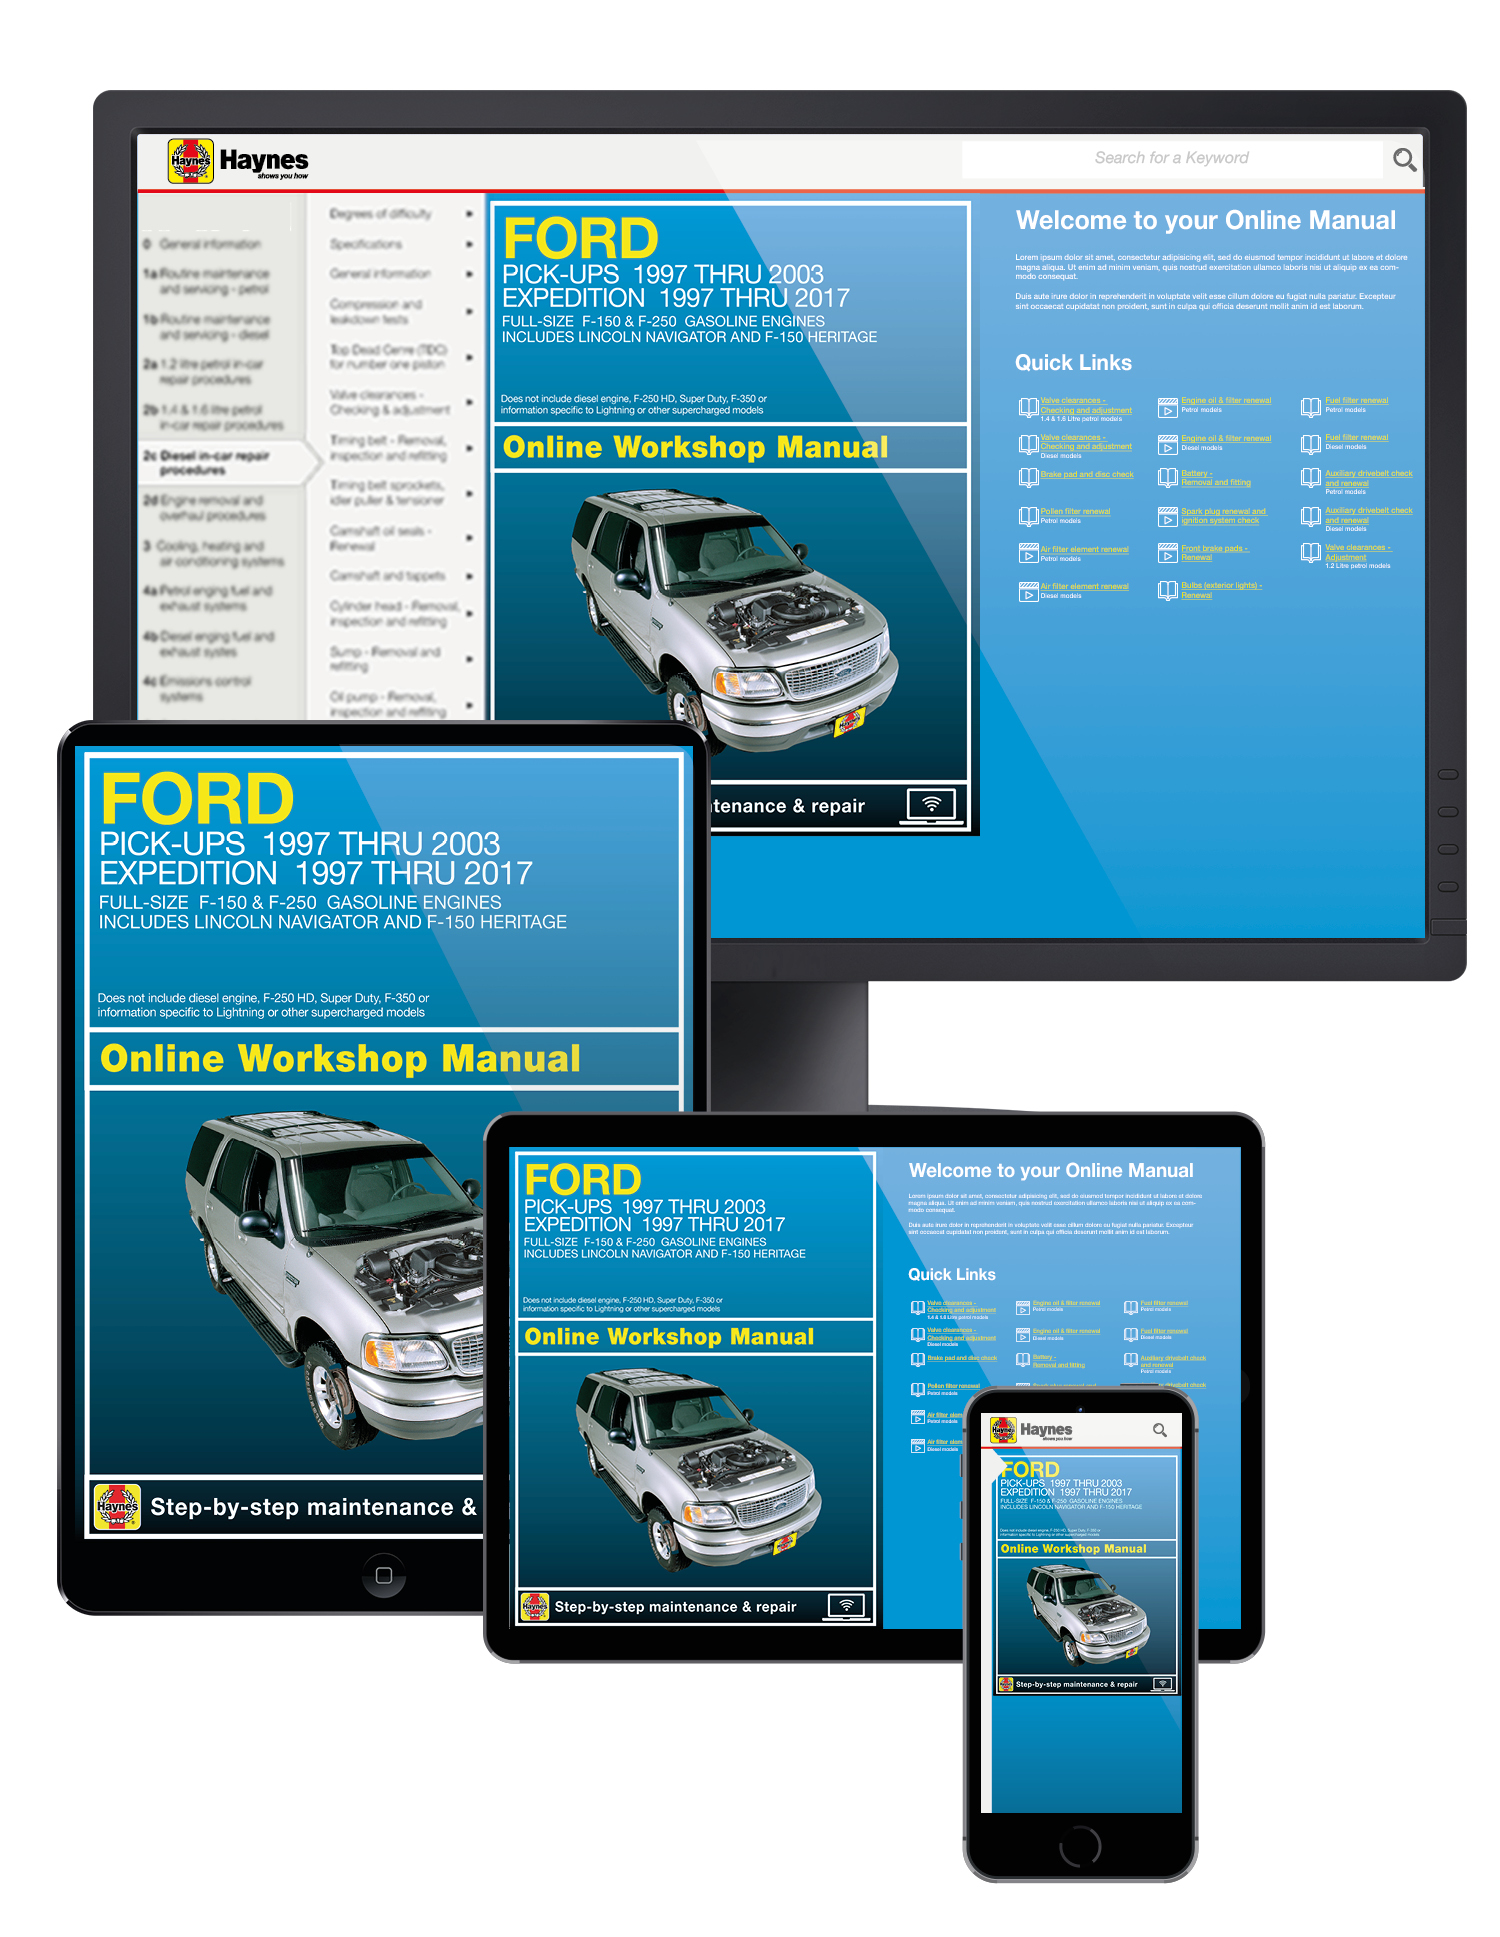 Ford F-150 (97-03), F-150 Heritage (04), F-250 (97-99), Expedition (97-17) & Lincoln Navigator (98-17) 2WD & 4WD Haynes Online Manual